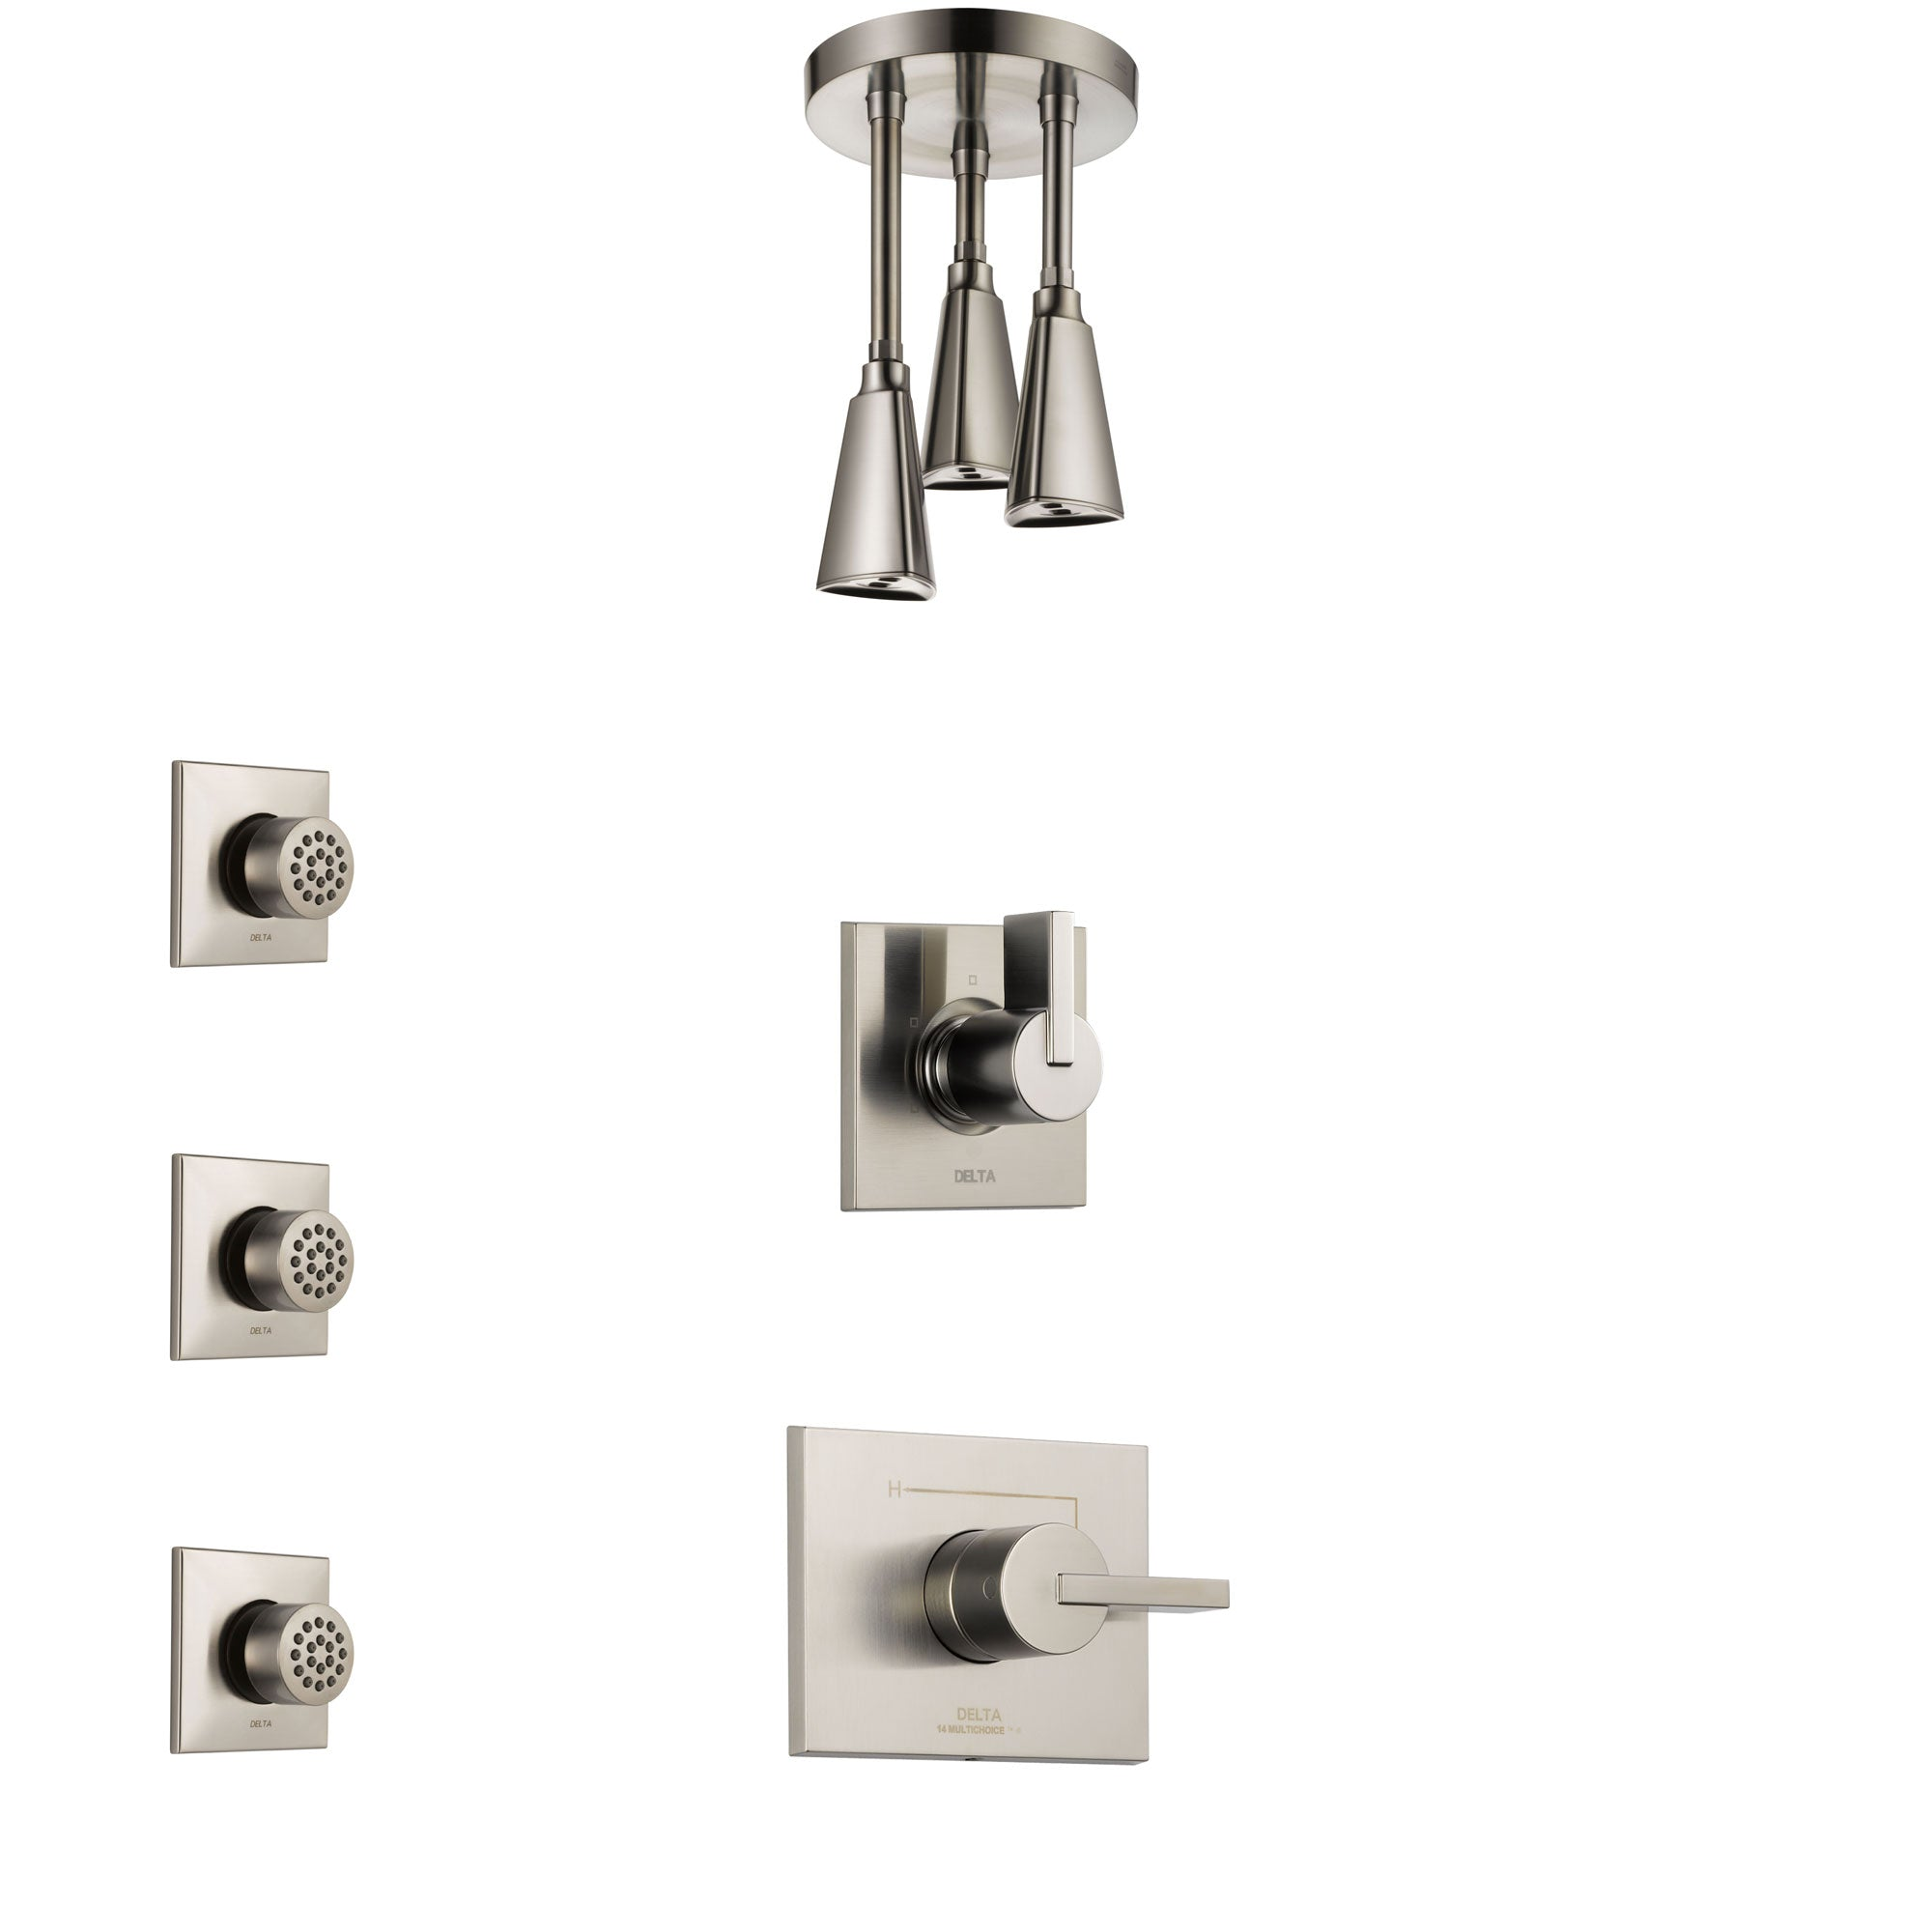 Delta Vero Stainless Steel Finish Shower System with Control Handle, 3-Setting Diverter, Ceiling Mount Showerhead, and 3 Body Sprays SS1453SS6